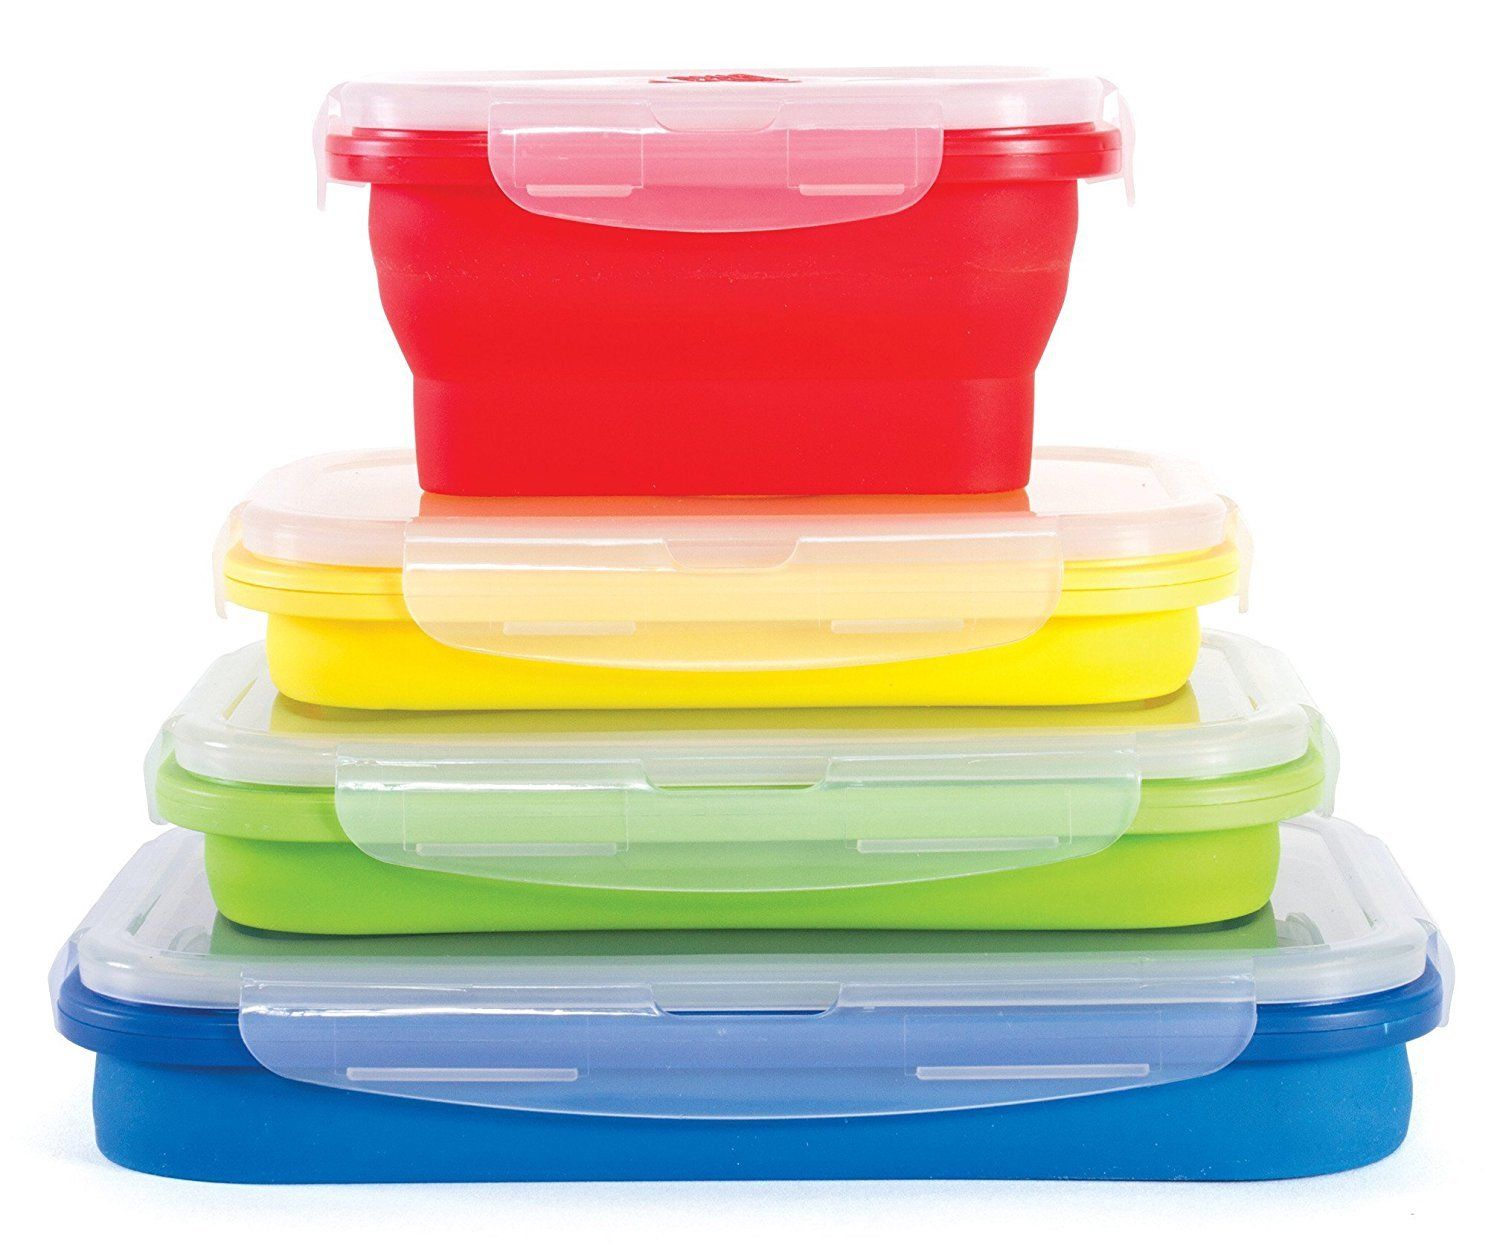 Thin Bins Collapsible Containers - Set of 4 Square Silicone Food Storage 1